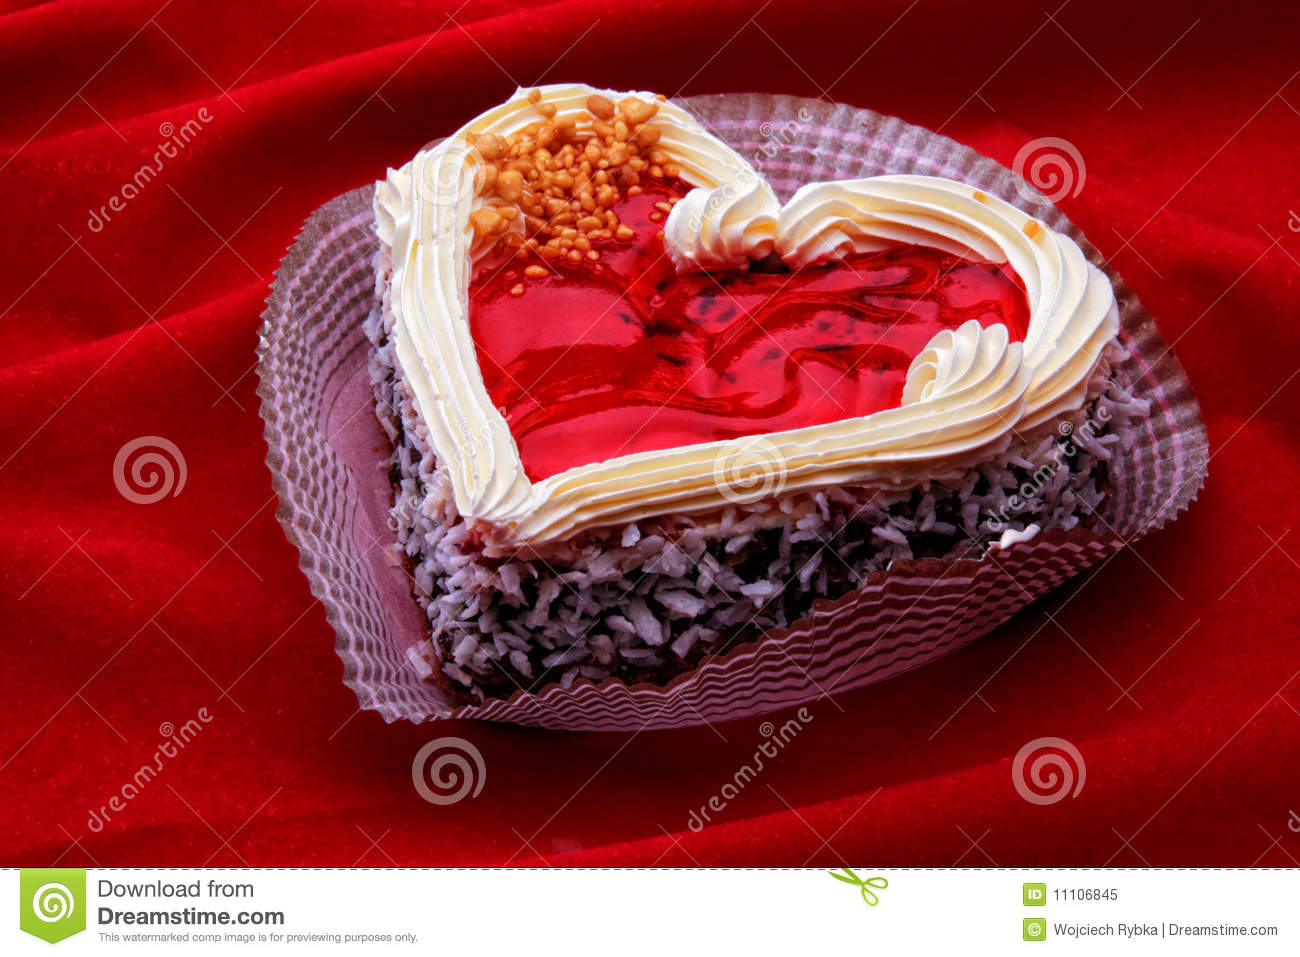 Heart Shaped Cake Stock Photos : Heart-shaped Cake On The Red Velvet Royalty Free Stock ...